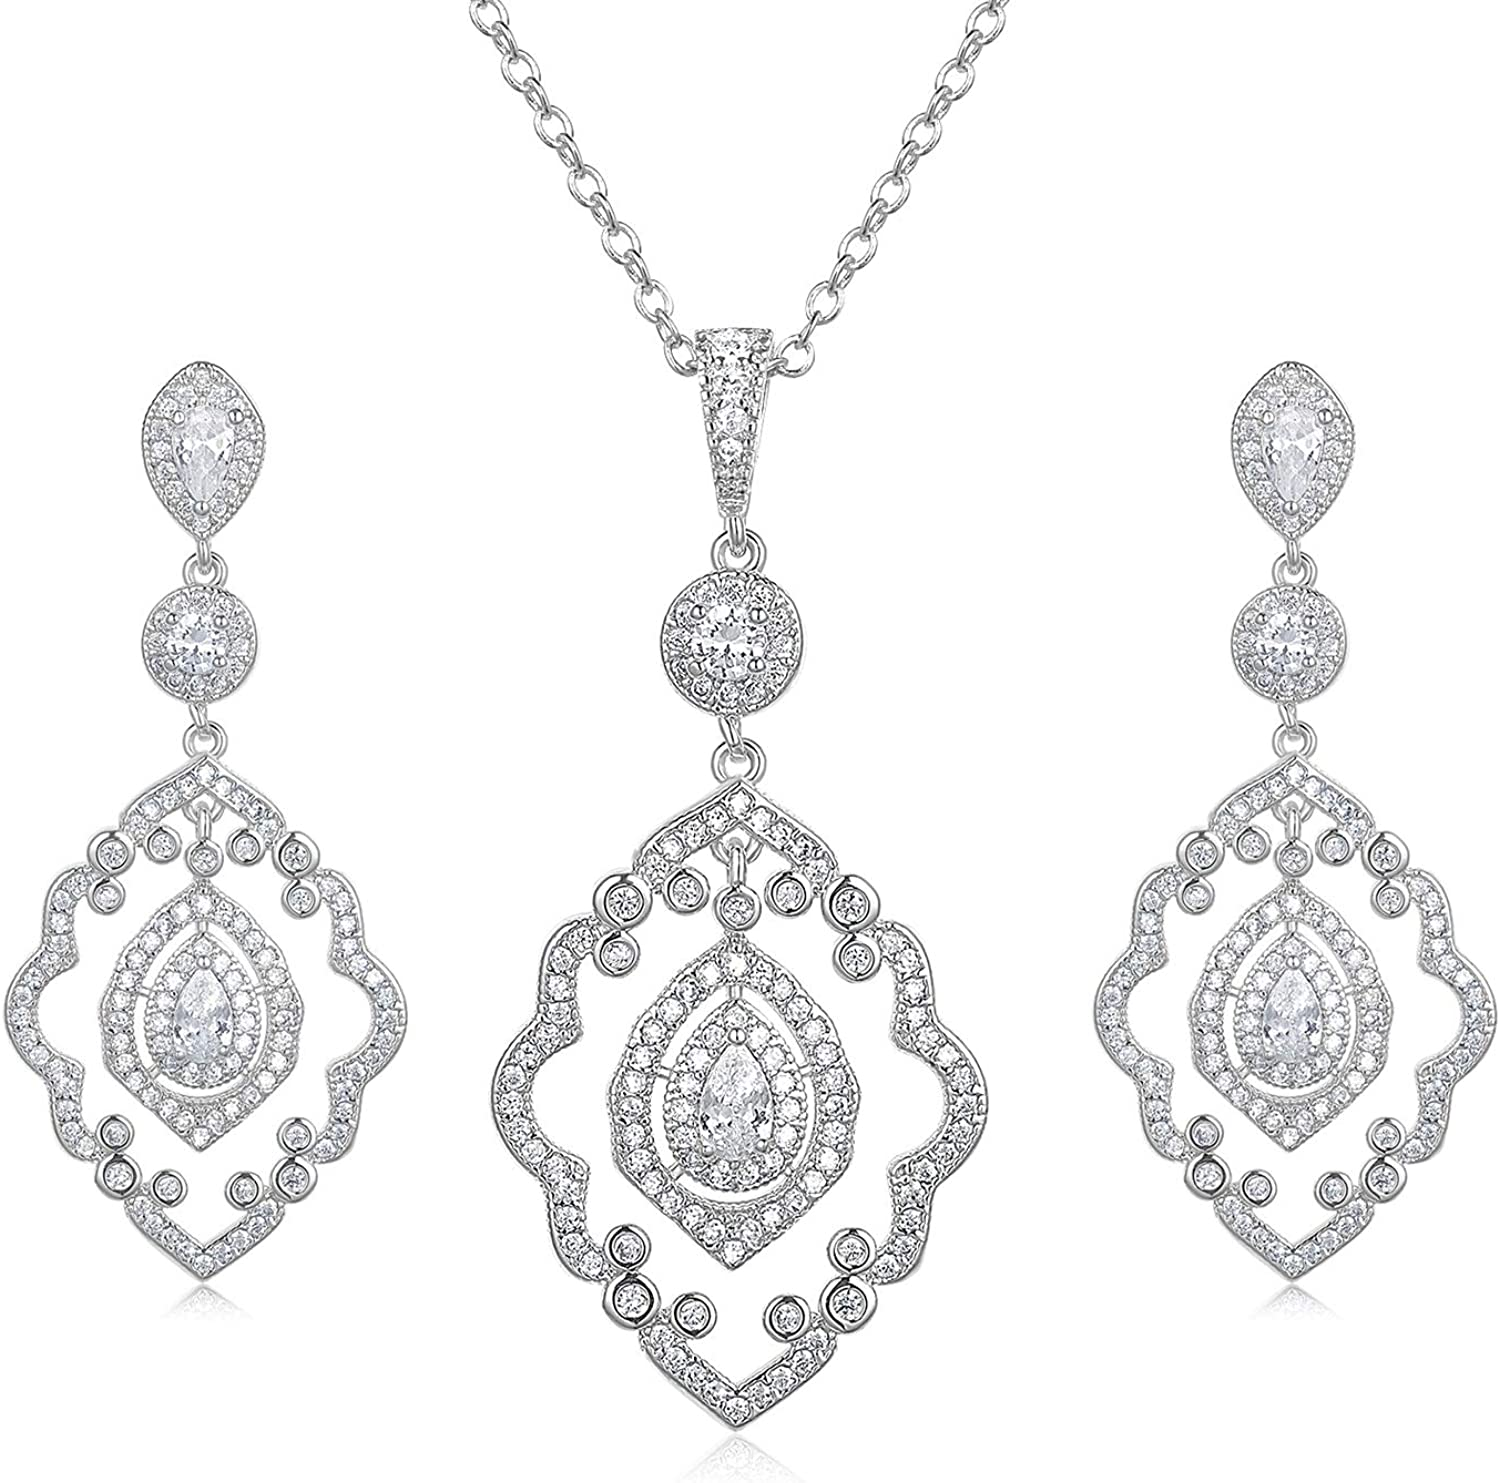 SWEETV Wedding Jewelry Sets for Brides, Crystal Bridal Necklace and Earrings Jewelry Sets for Women Party Prom Gift